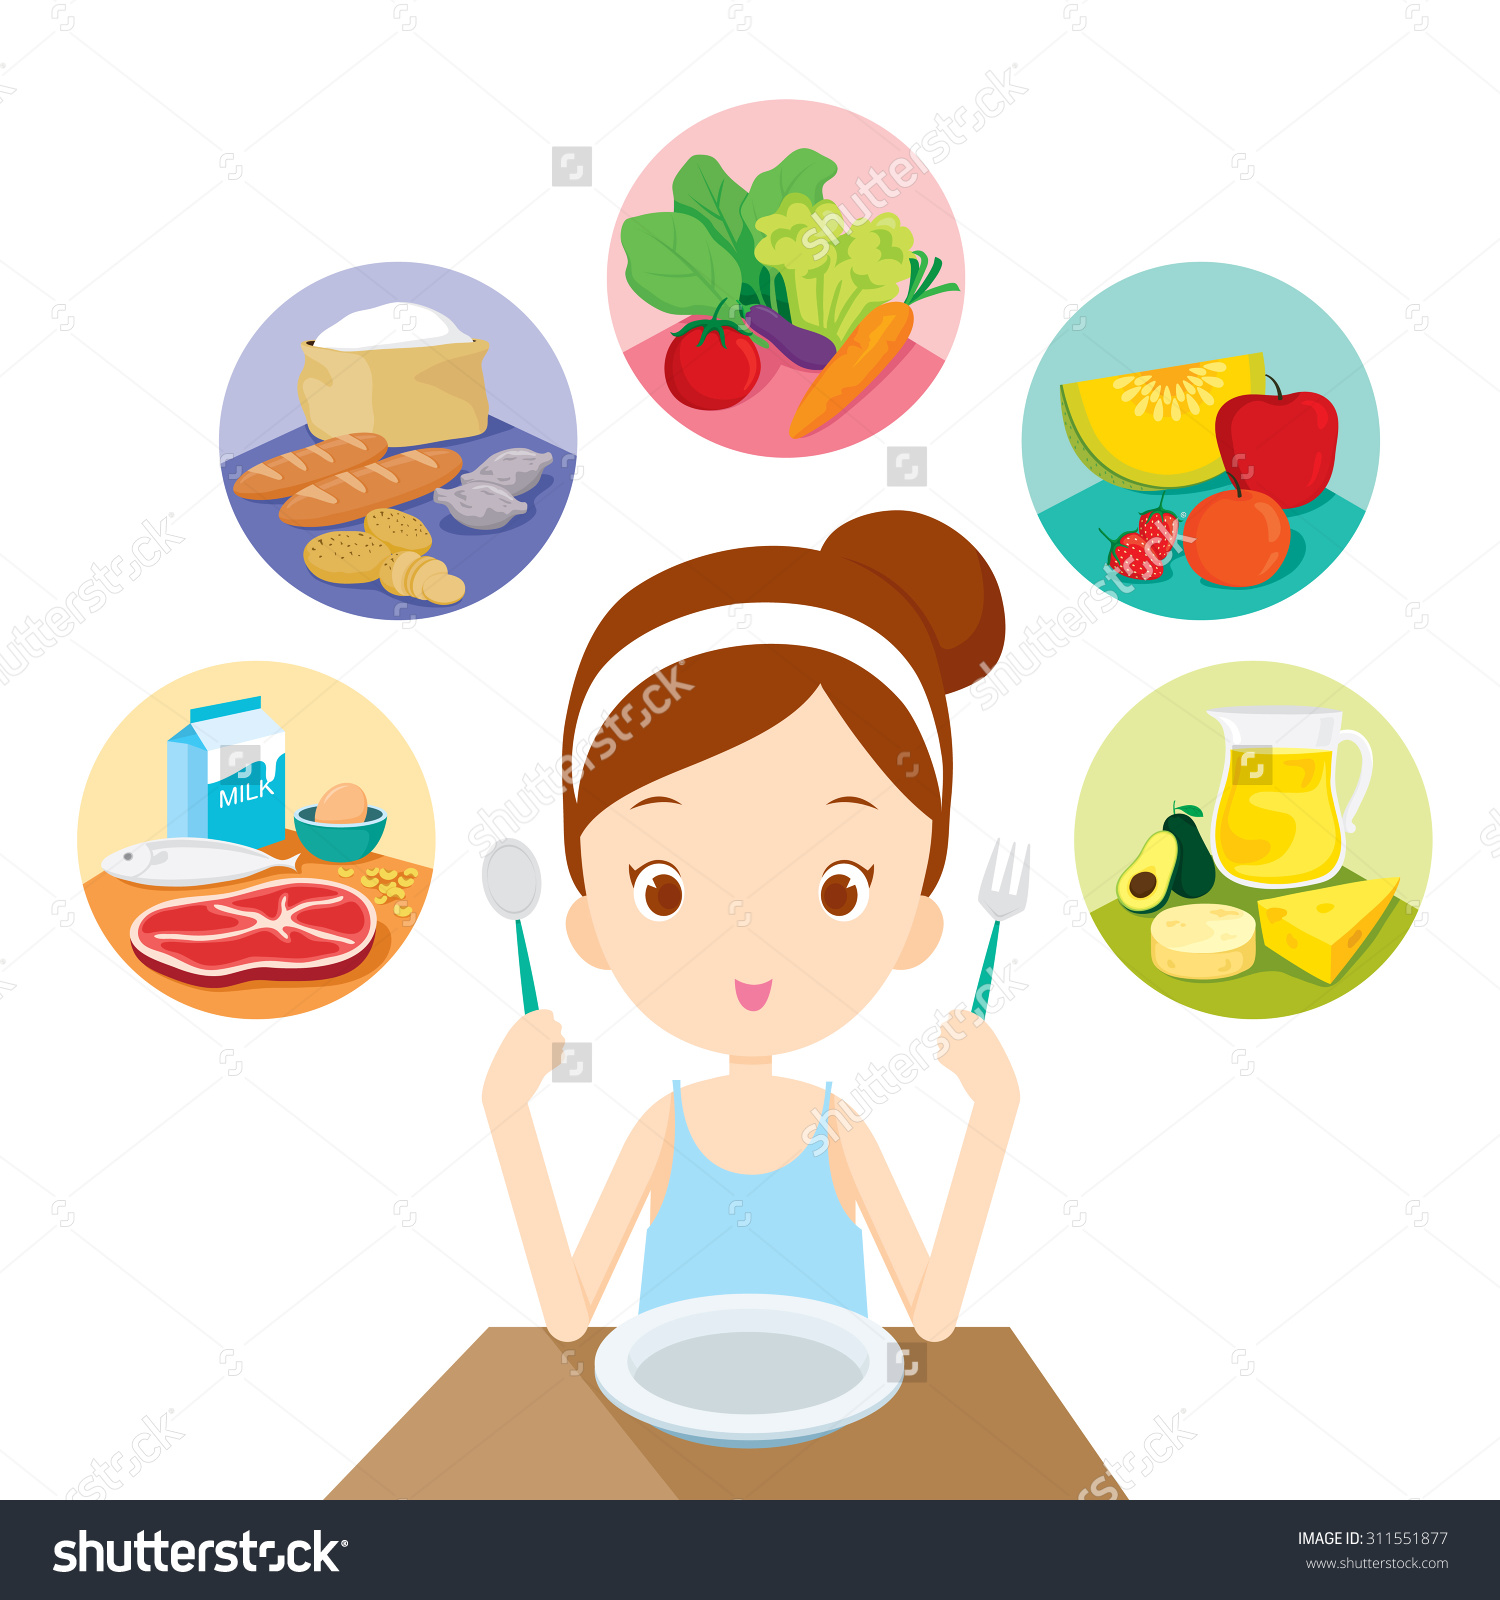 Healthy eating images clip art.